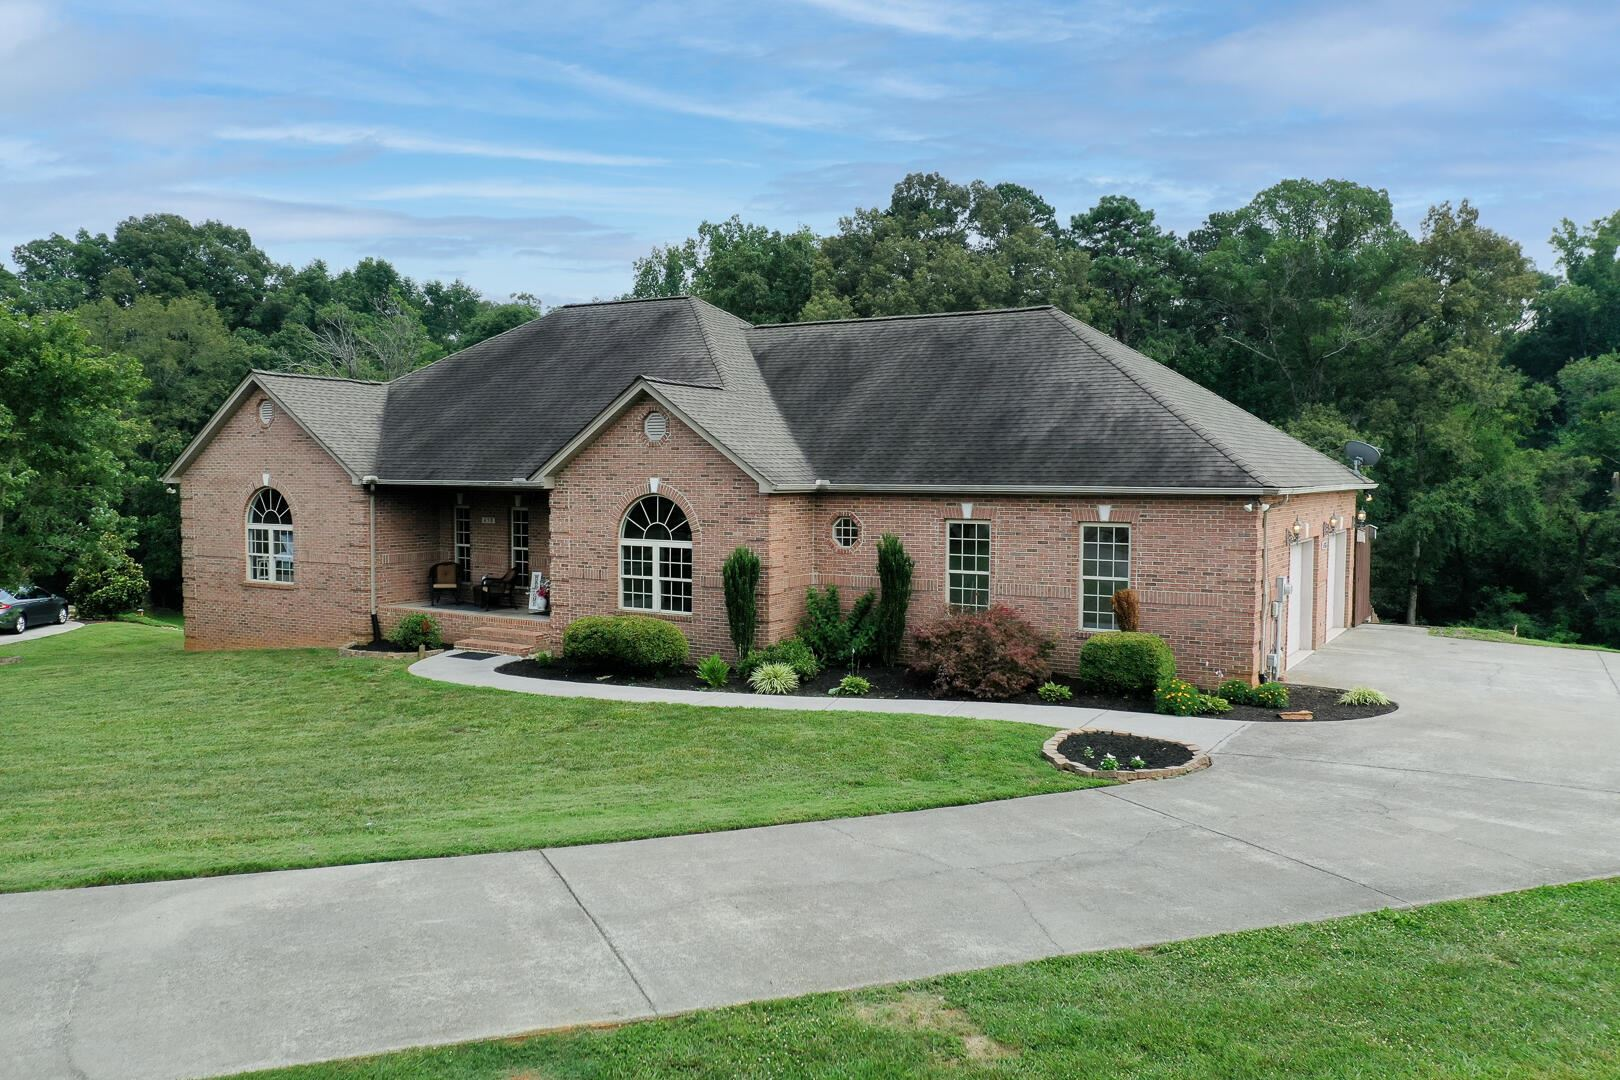 Photo of 458 Lager Drive, Maryville, TN 37801 (MLS # 1161503)